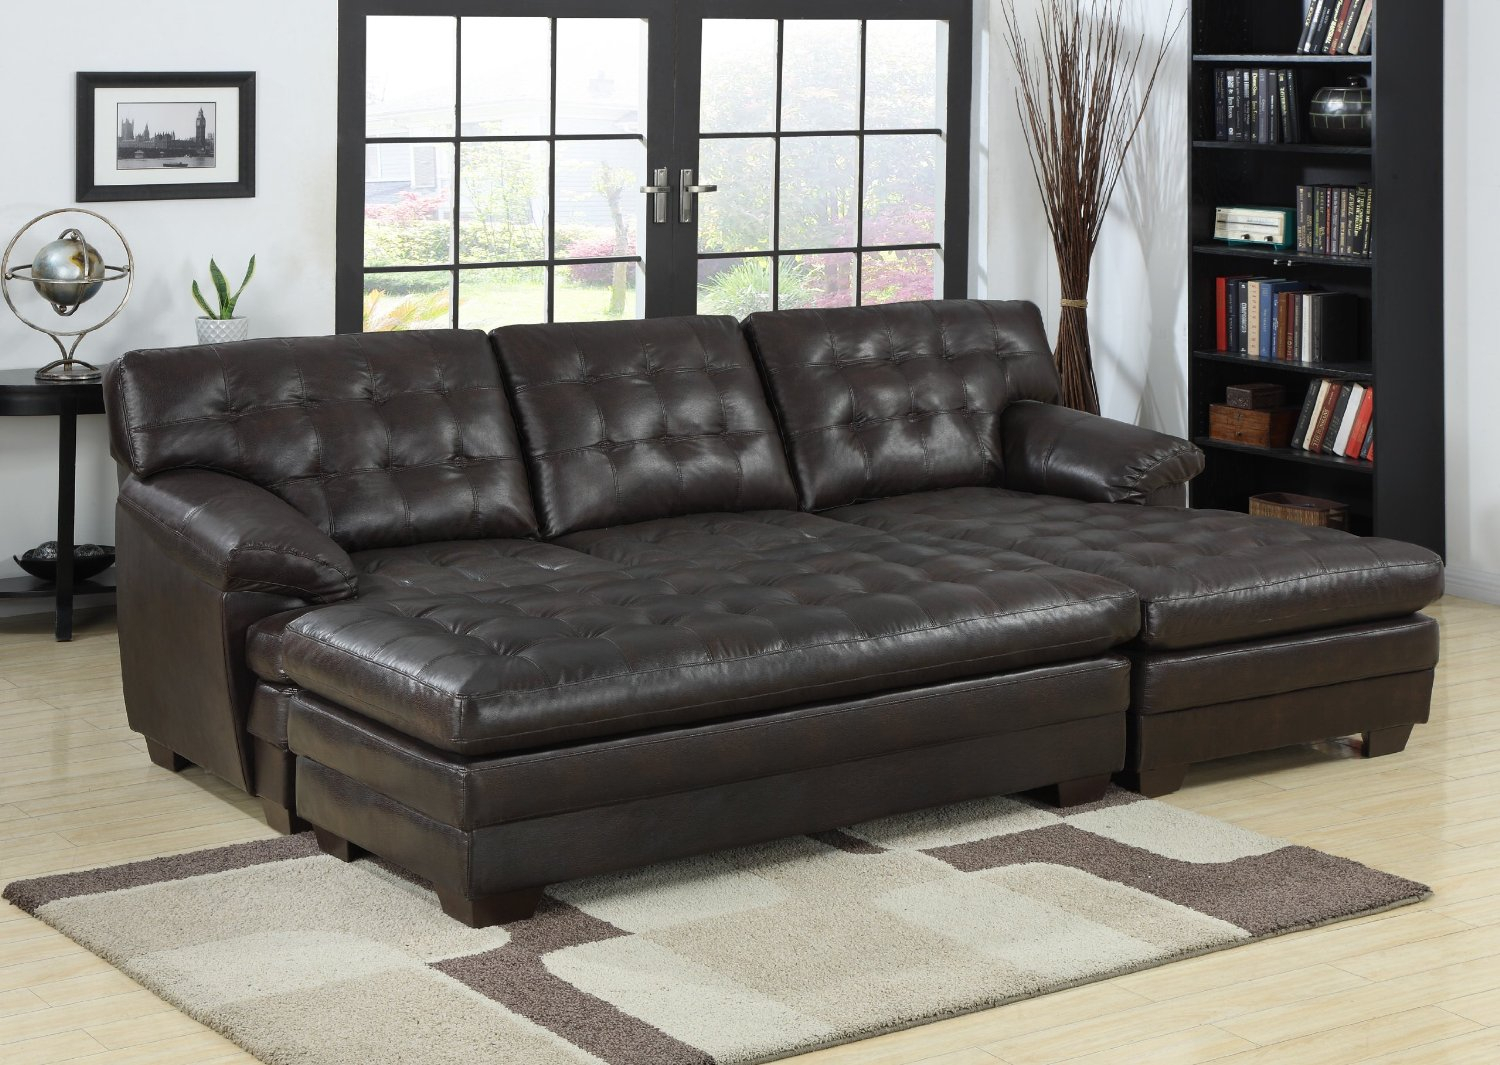 2 Piece Sectional Sofa With Chaise Design – Homesfeed With Regard To Copenhagen Reclining Sectional Sofas With Right Storage Chaise (View 12 of 15)